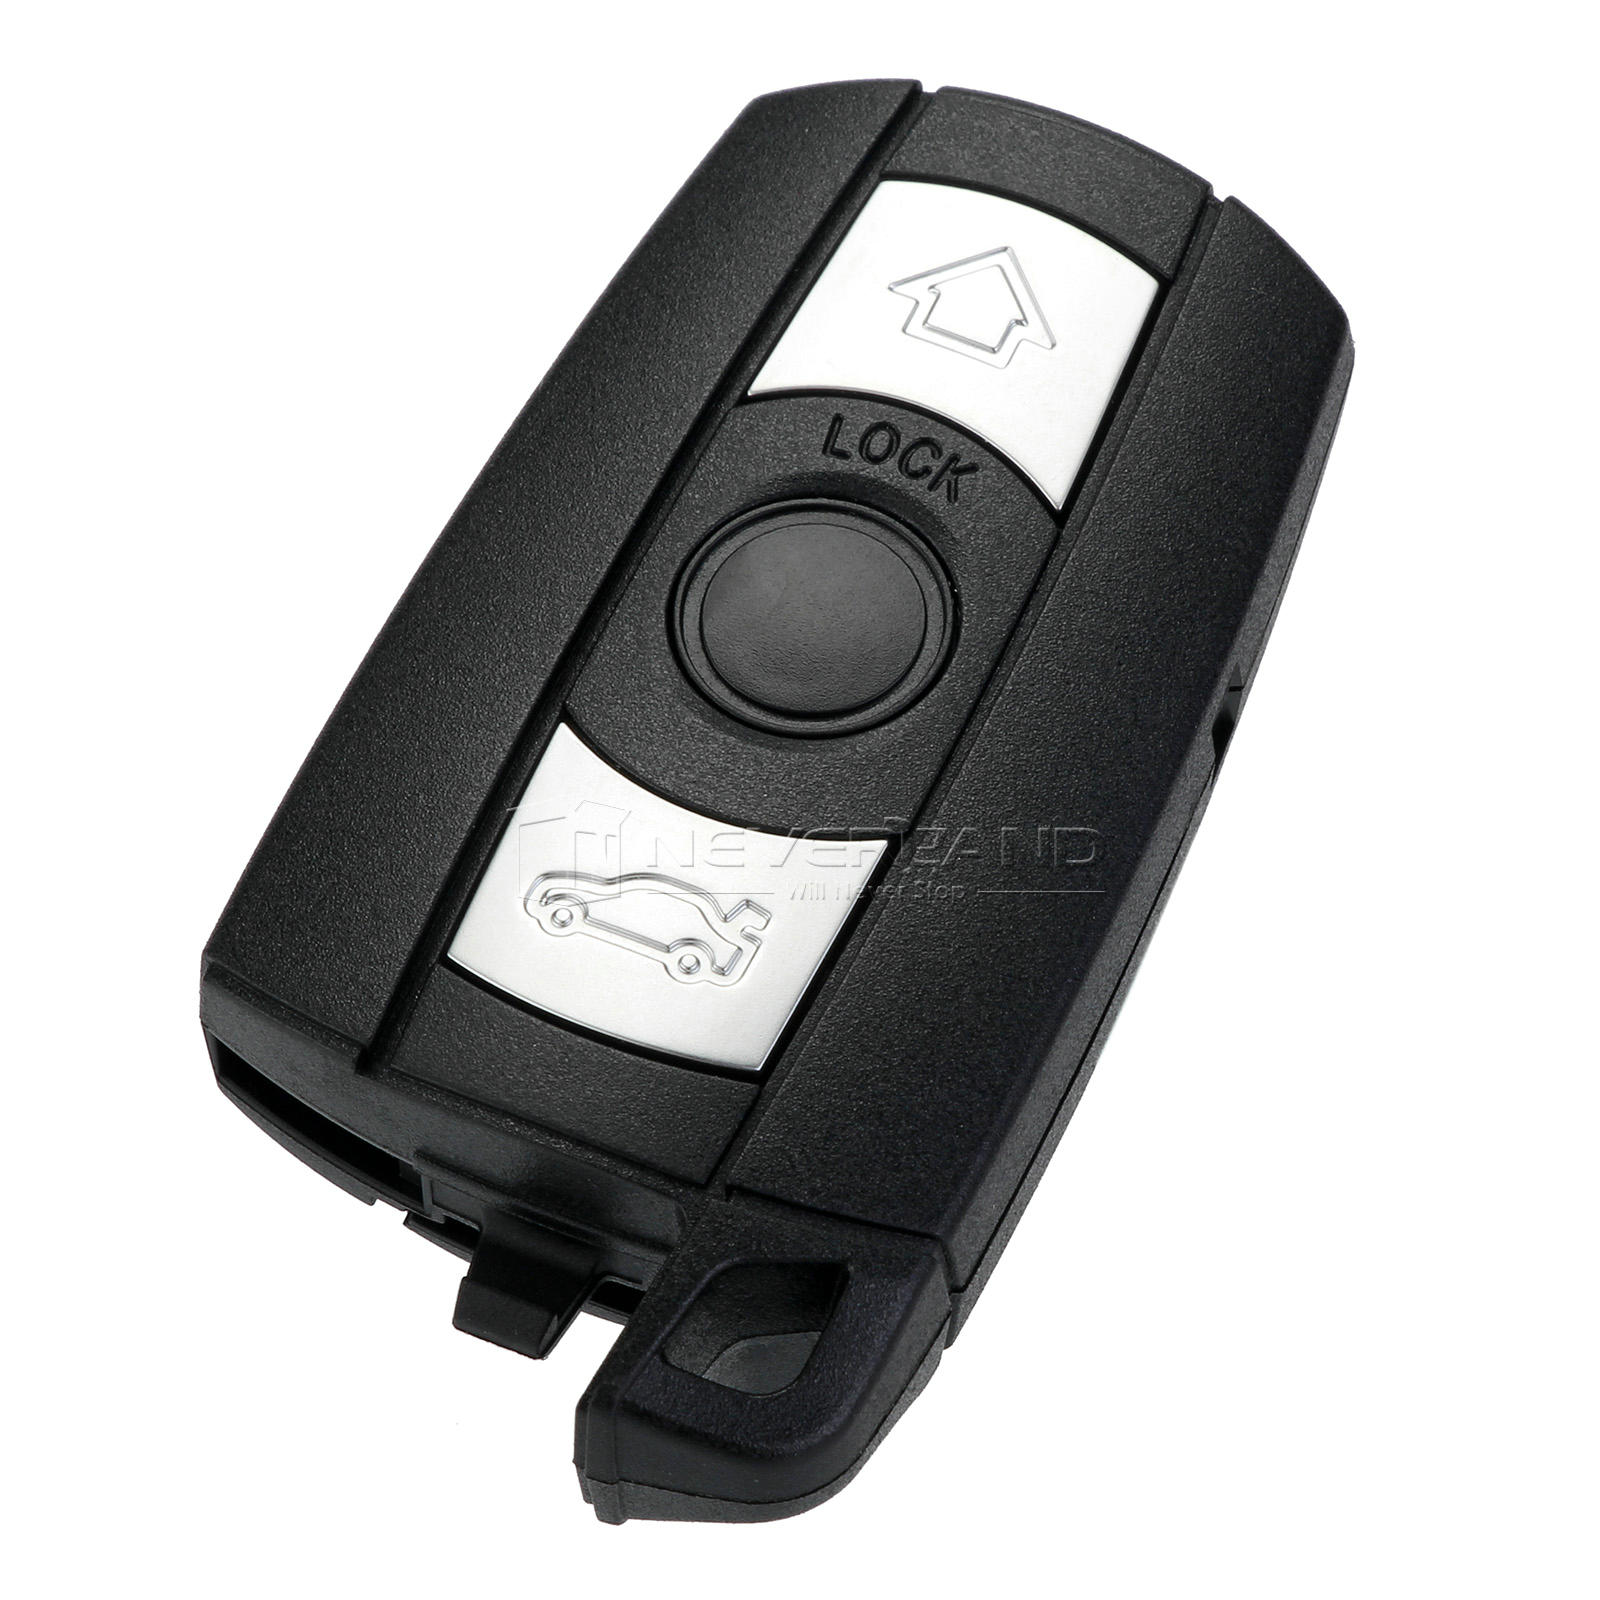 New REPL Keyless Entry Car Fob Remote Smart Key For BMW 3